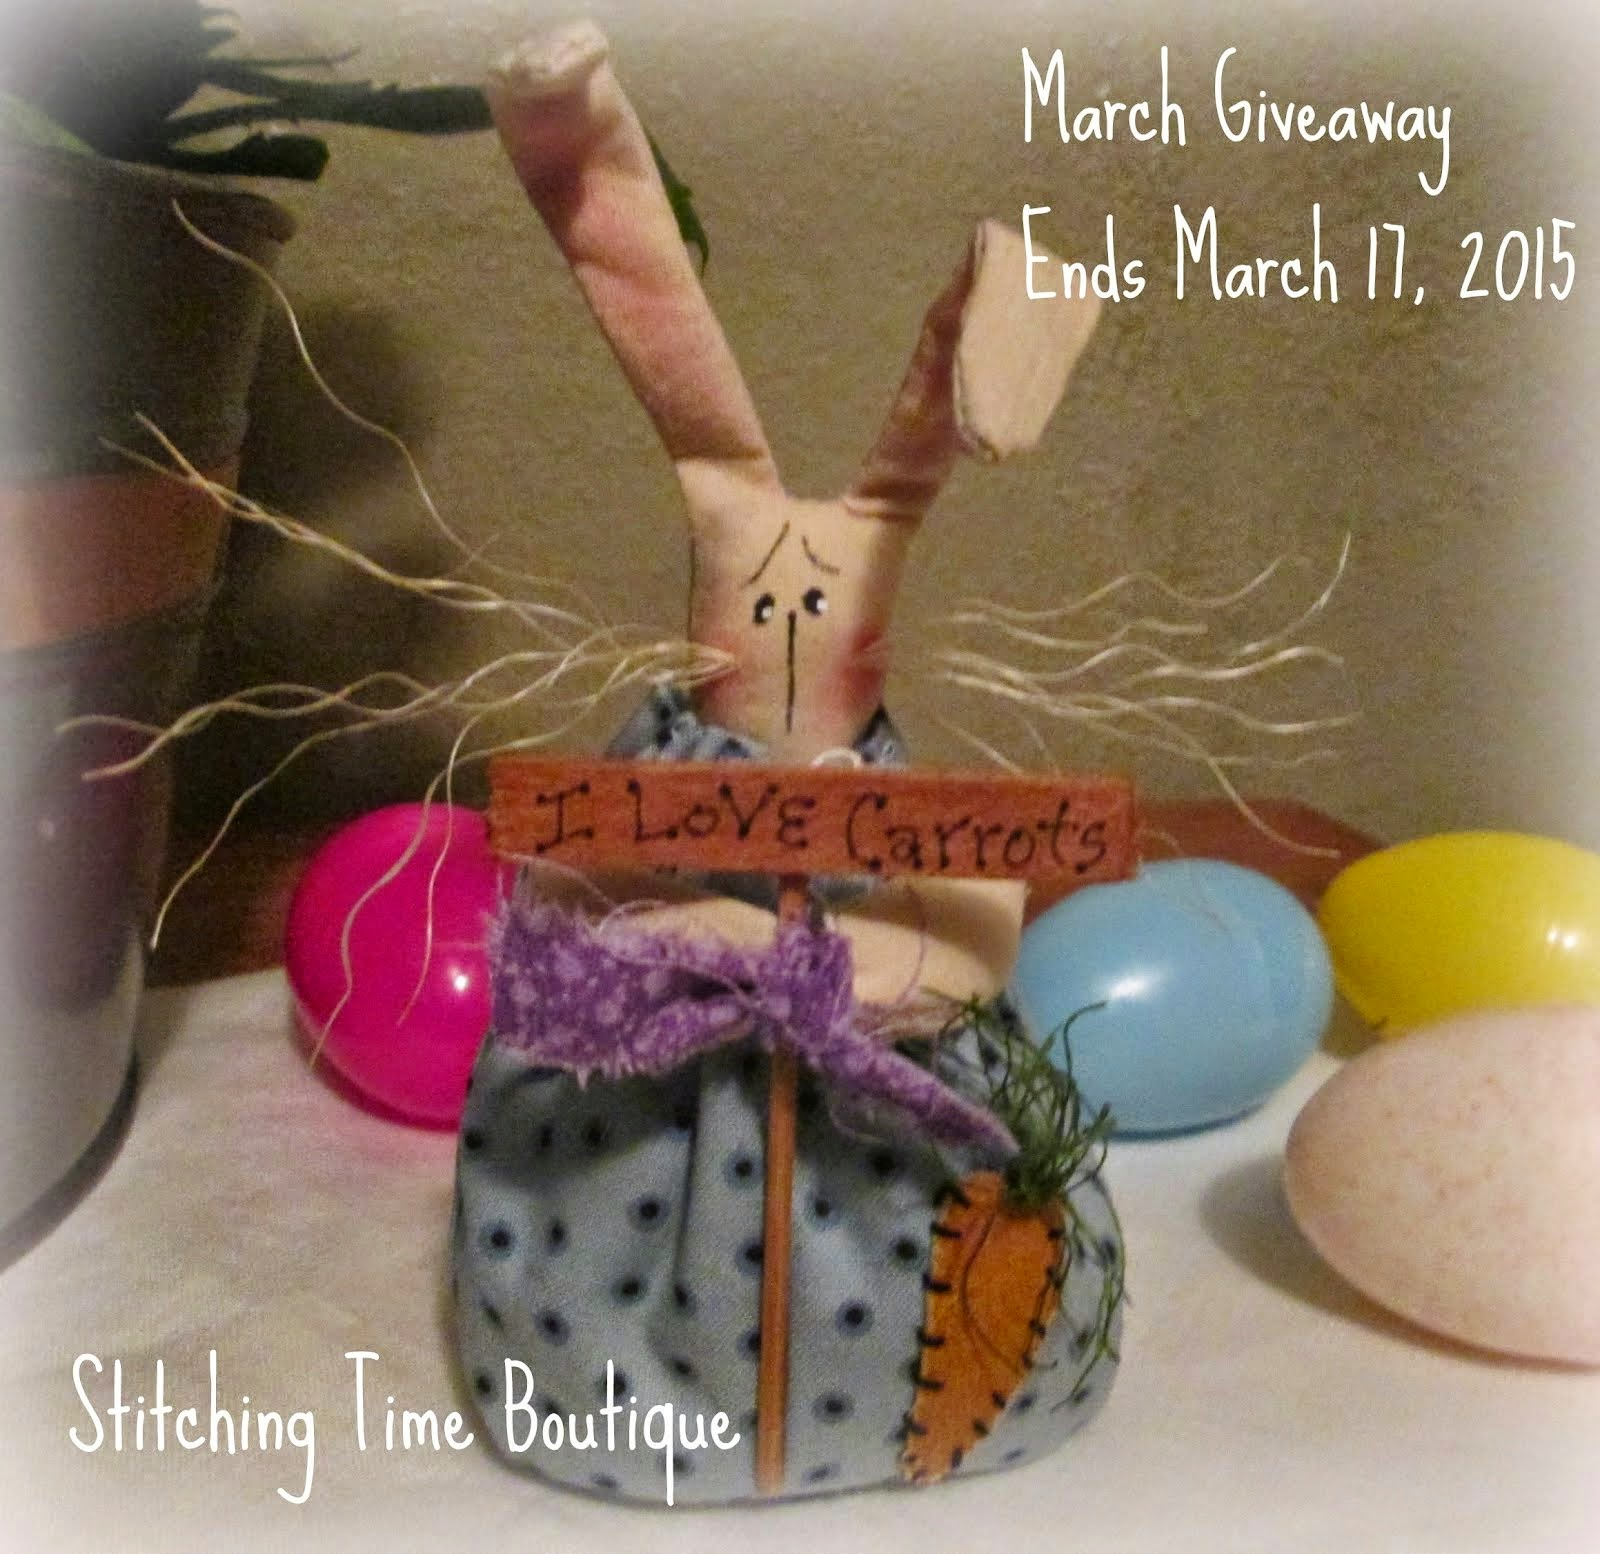 Stitching Time Boutique Giveaway